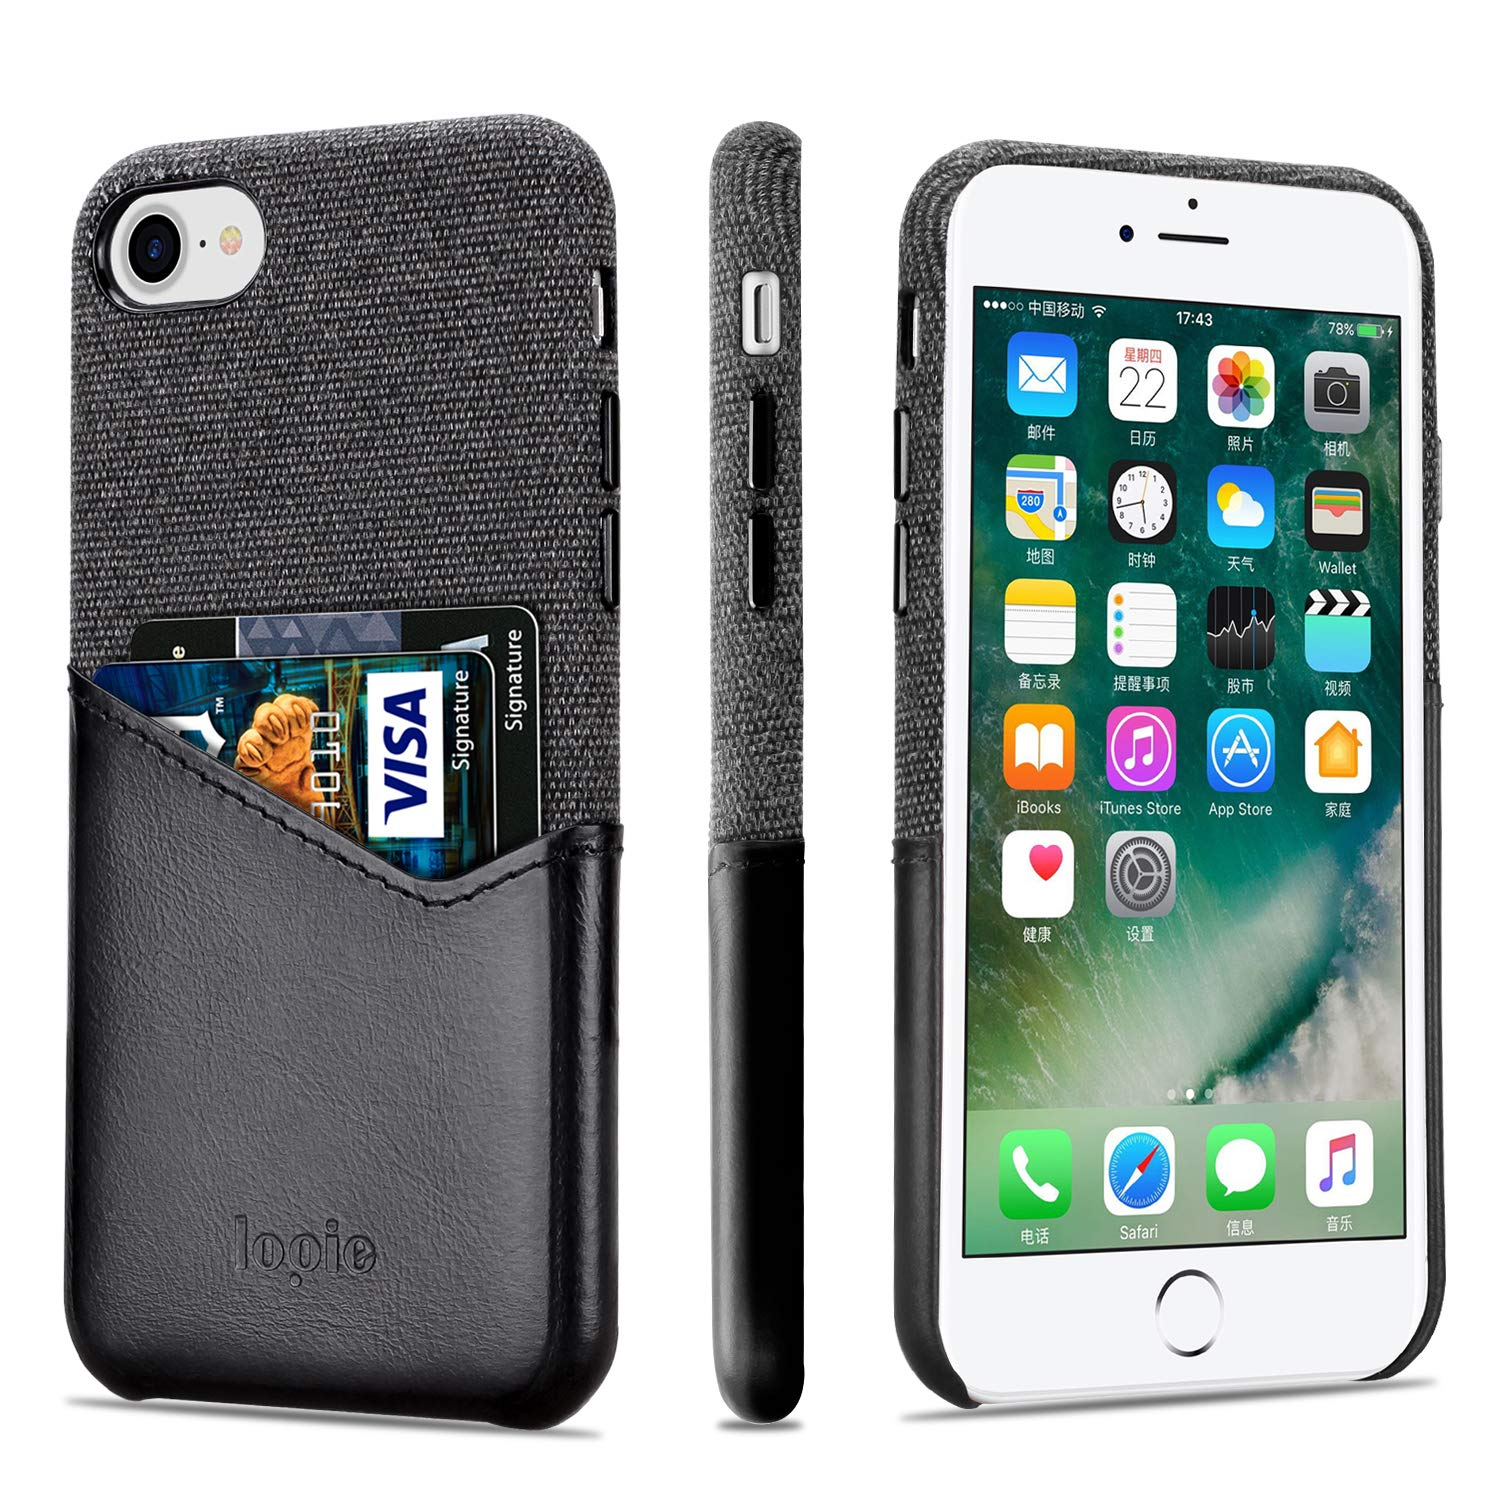 Lopie [Sea Island Cotton Series] Slim Card Case Compatible for iPhone 7 Plus and iPhone 8 Plus, Fabric Protection Cover with Leather Card Holder Slot Design, Black